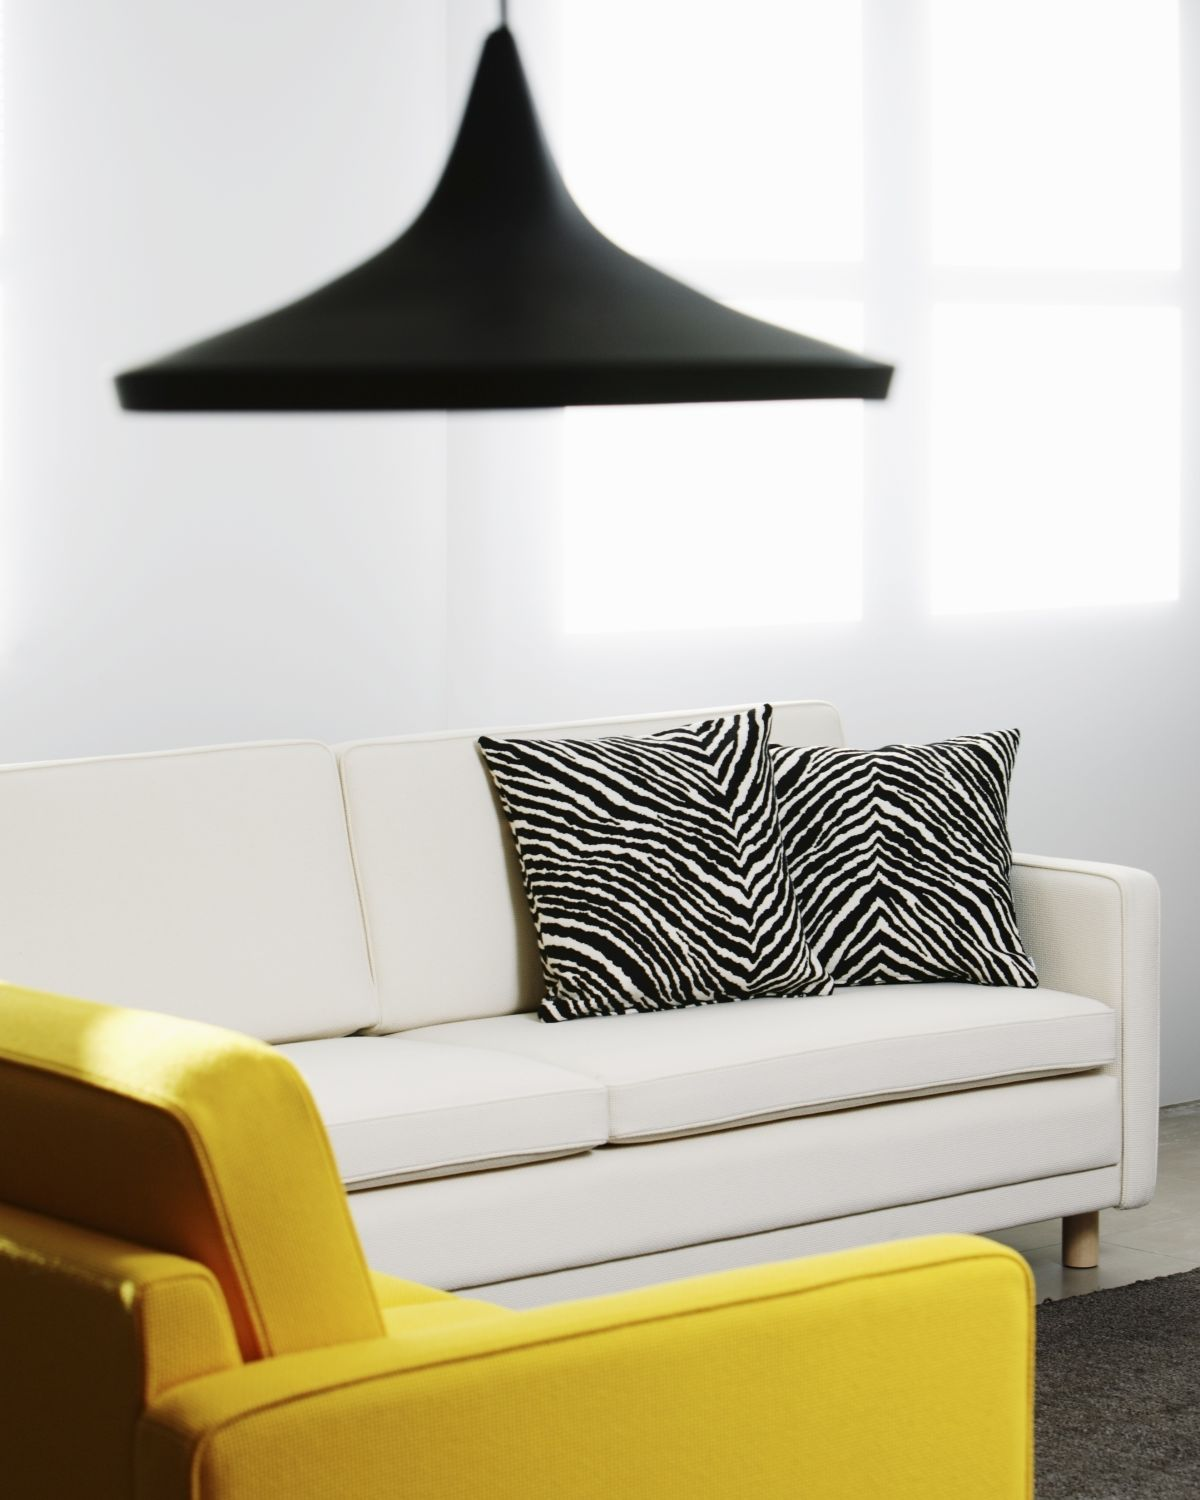 Sofa-Bed-549-Zebra-Cushion-1848798